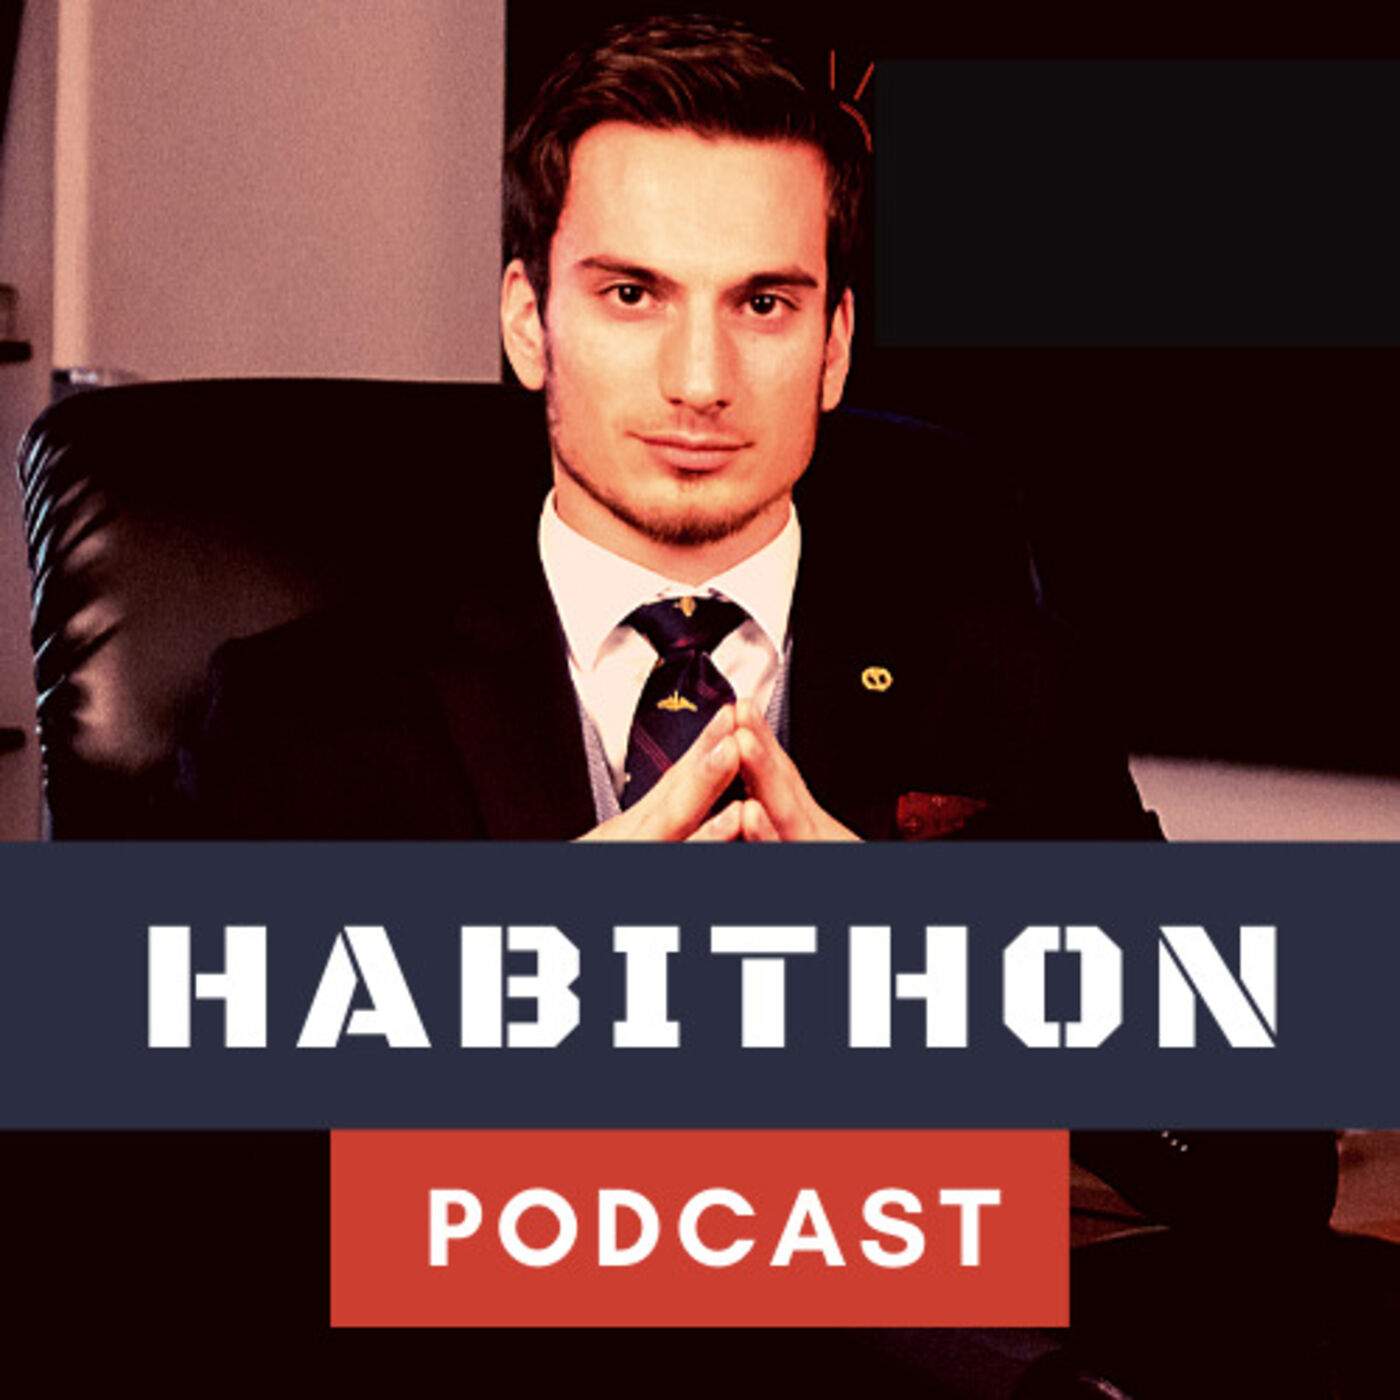 #24 How To Make Better Decisions (ft. Maximilian Gillberg)